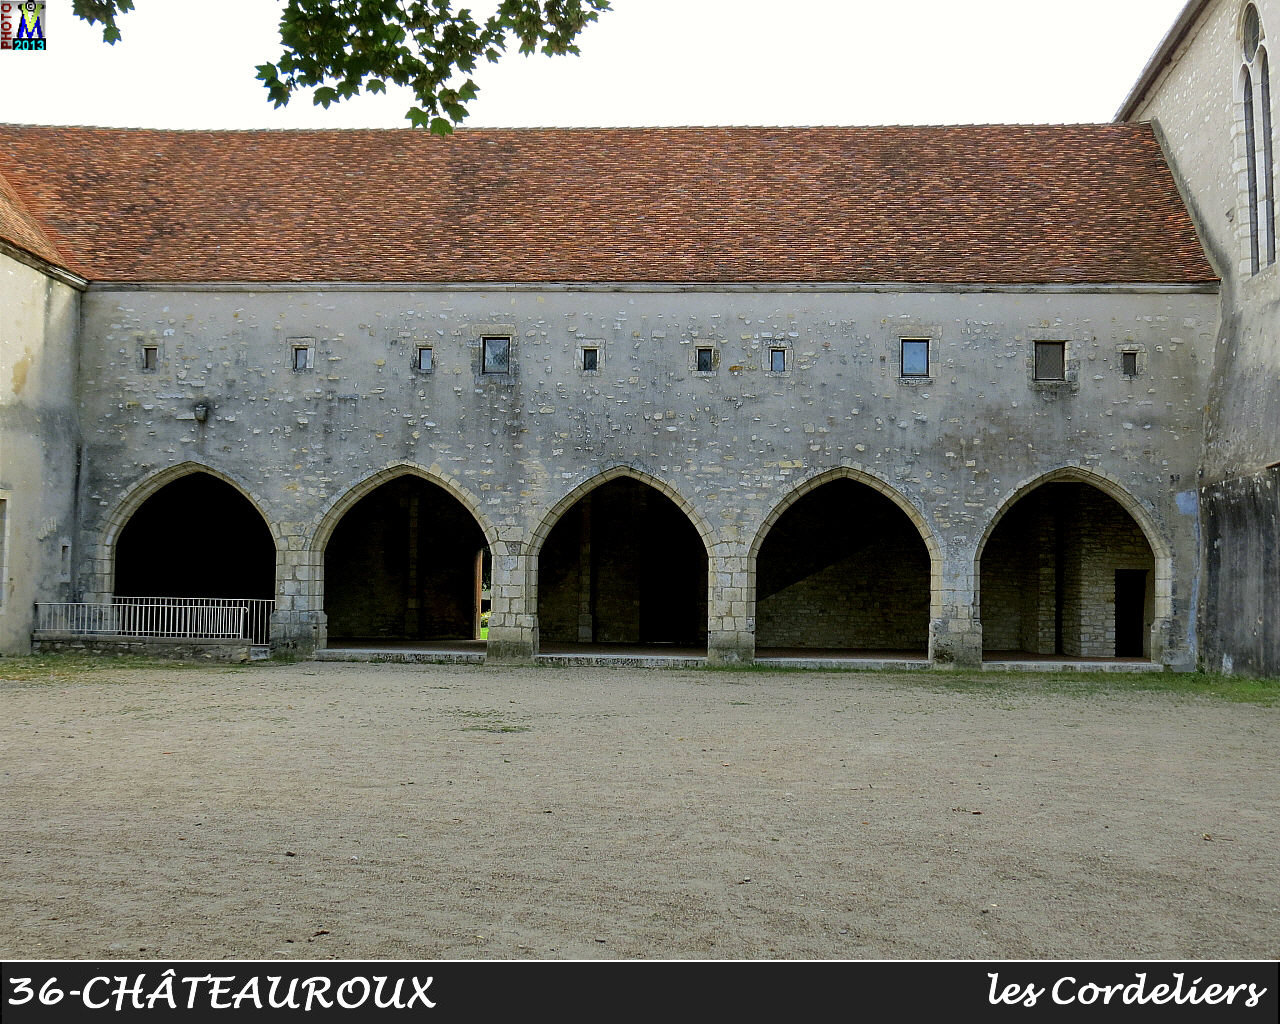 36CHATEAUROUX_cordeliers_106.jpg